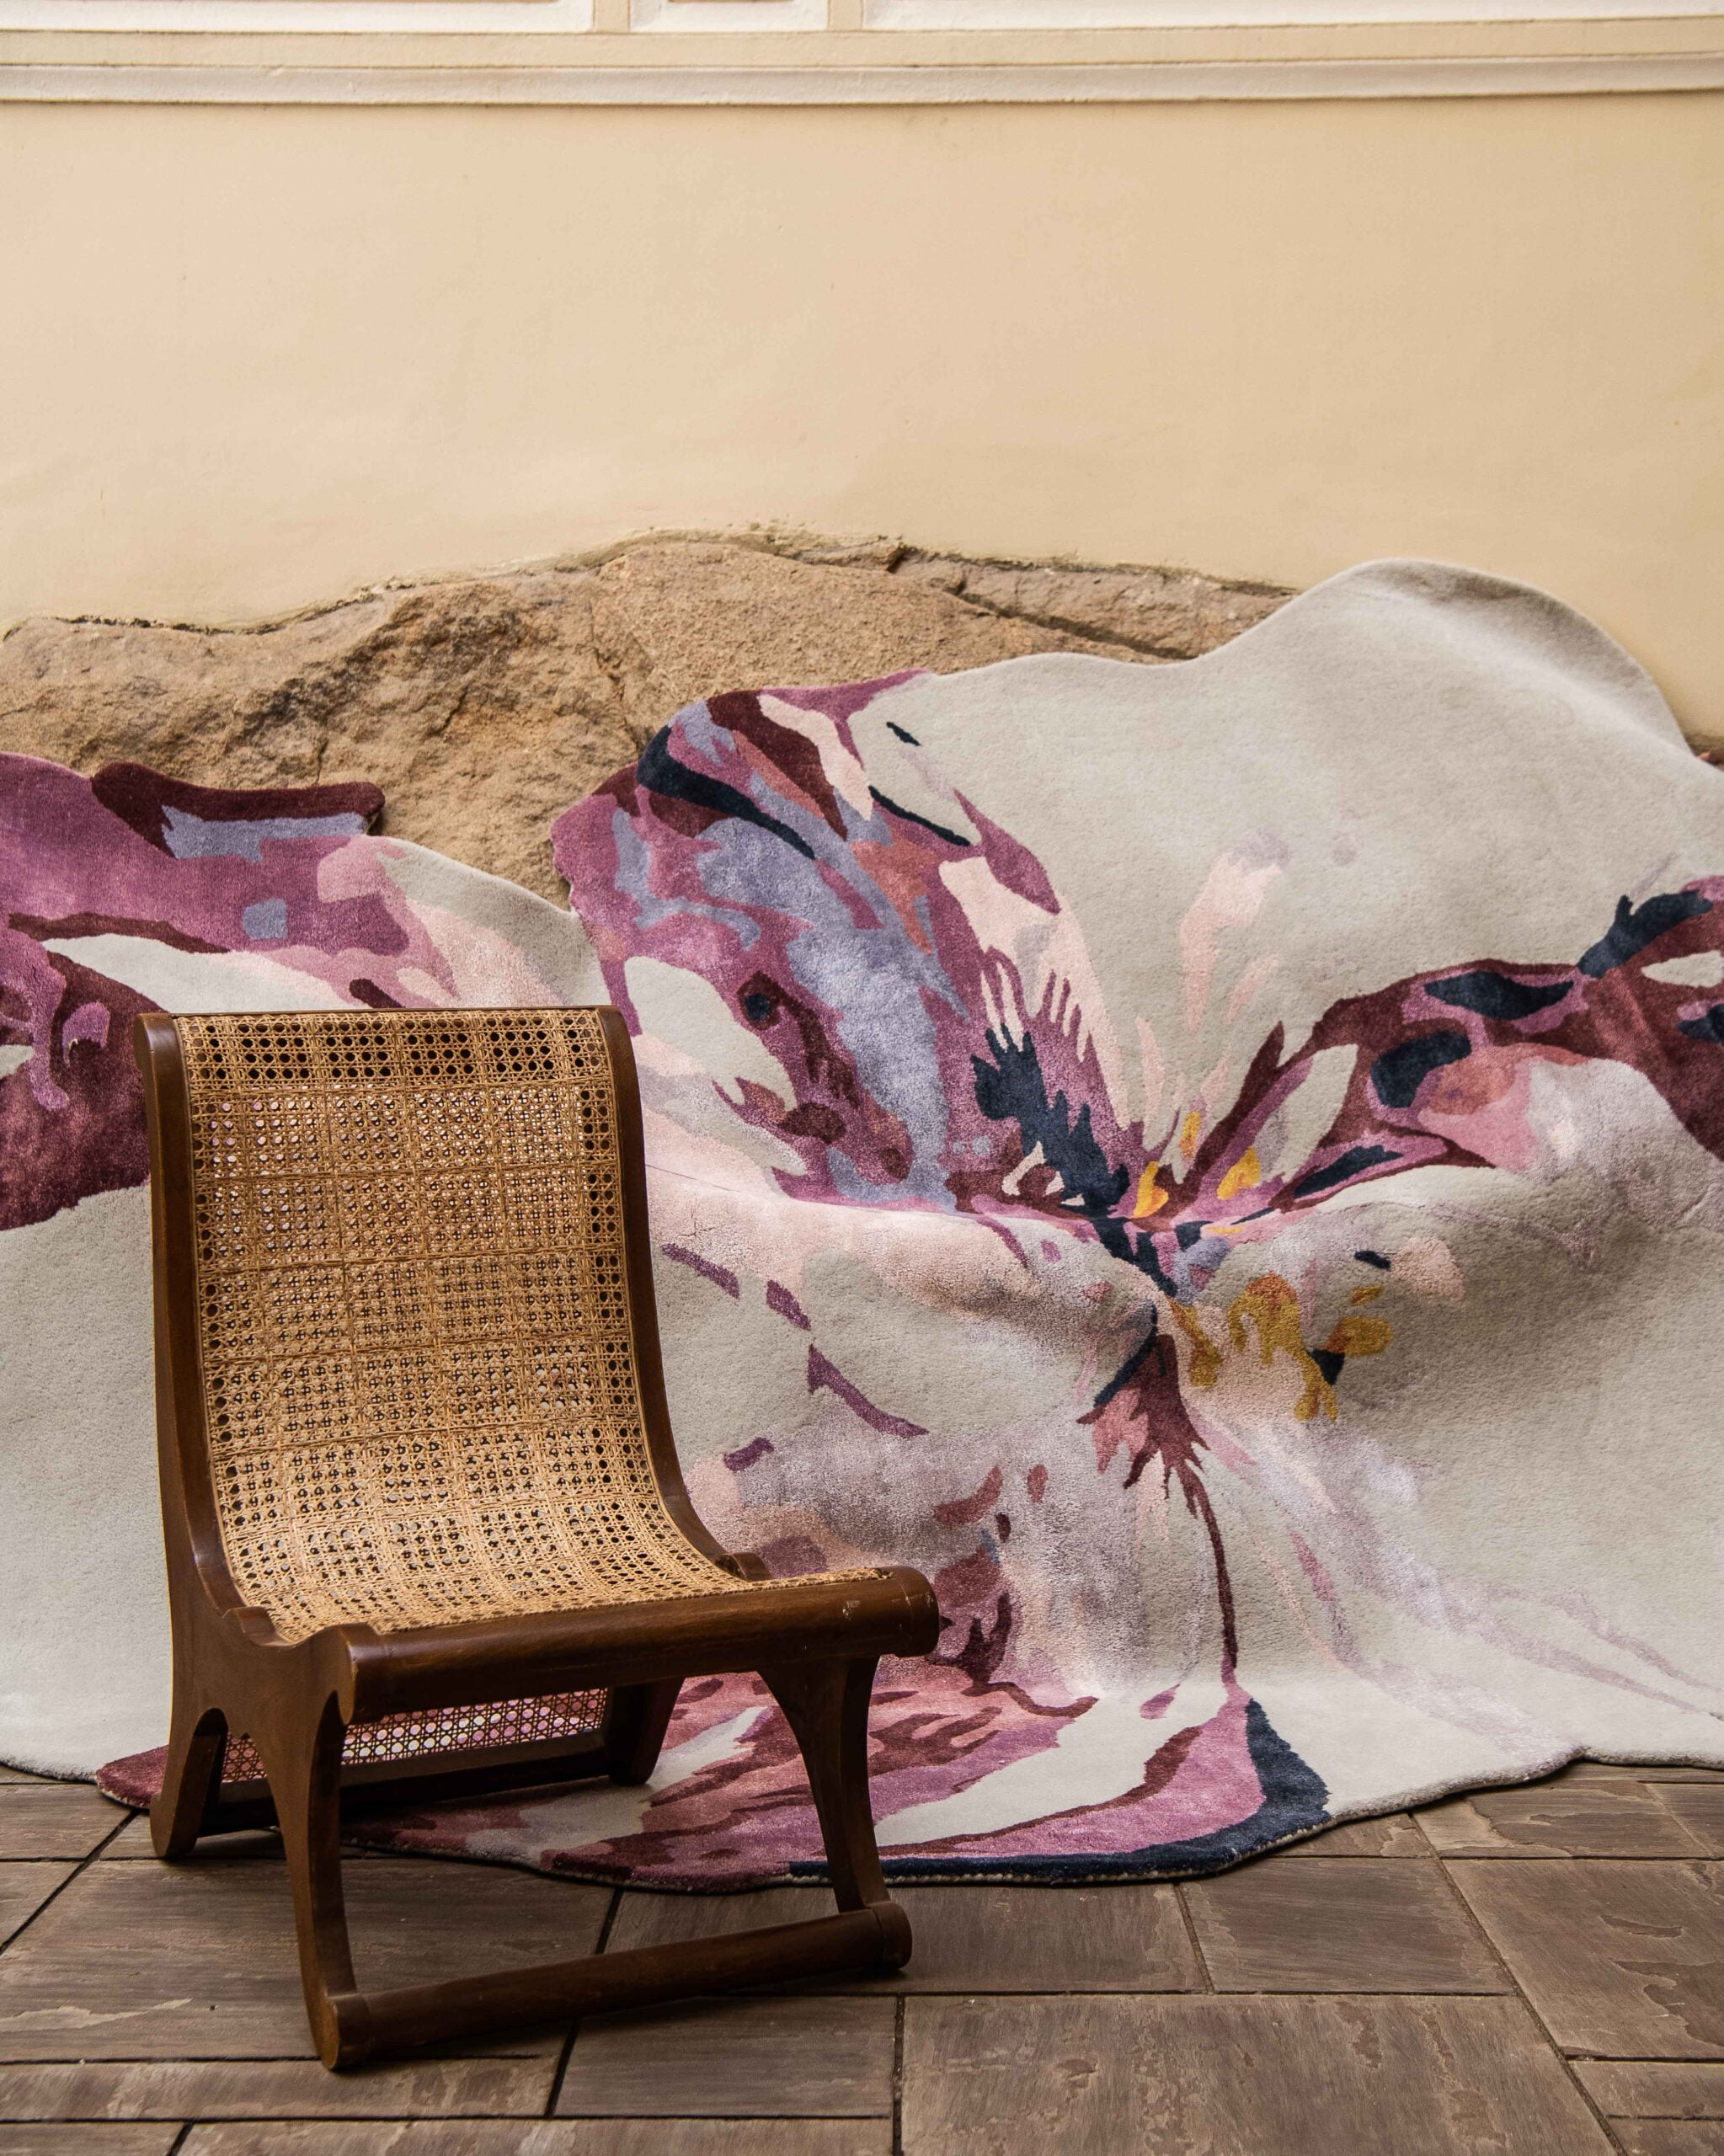 House of Rugs & Gur Organics Unveil A Sustainable Collection of Rugs - Kairos